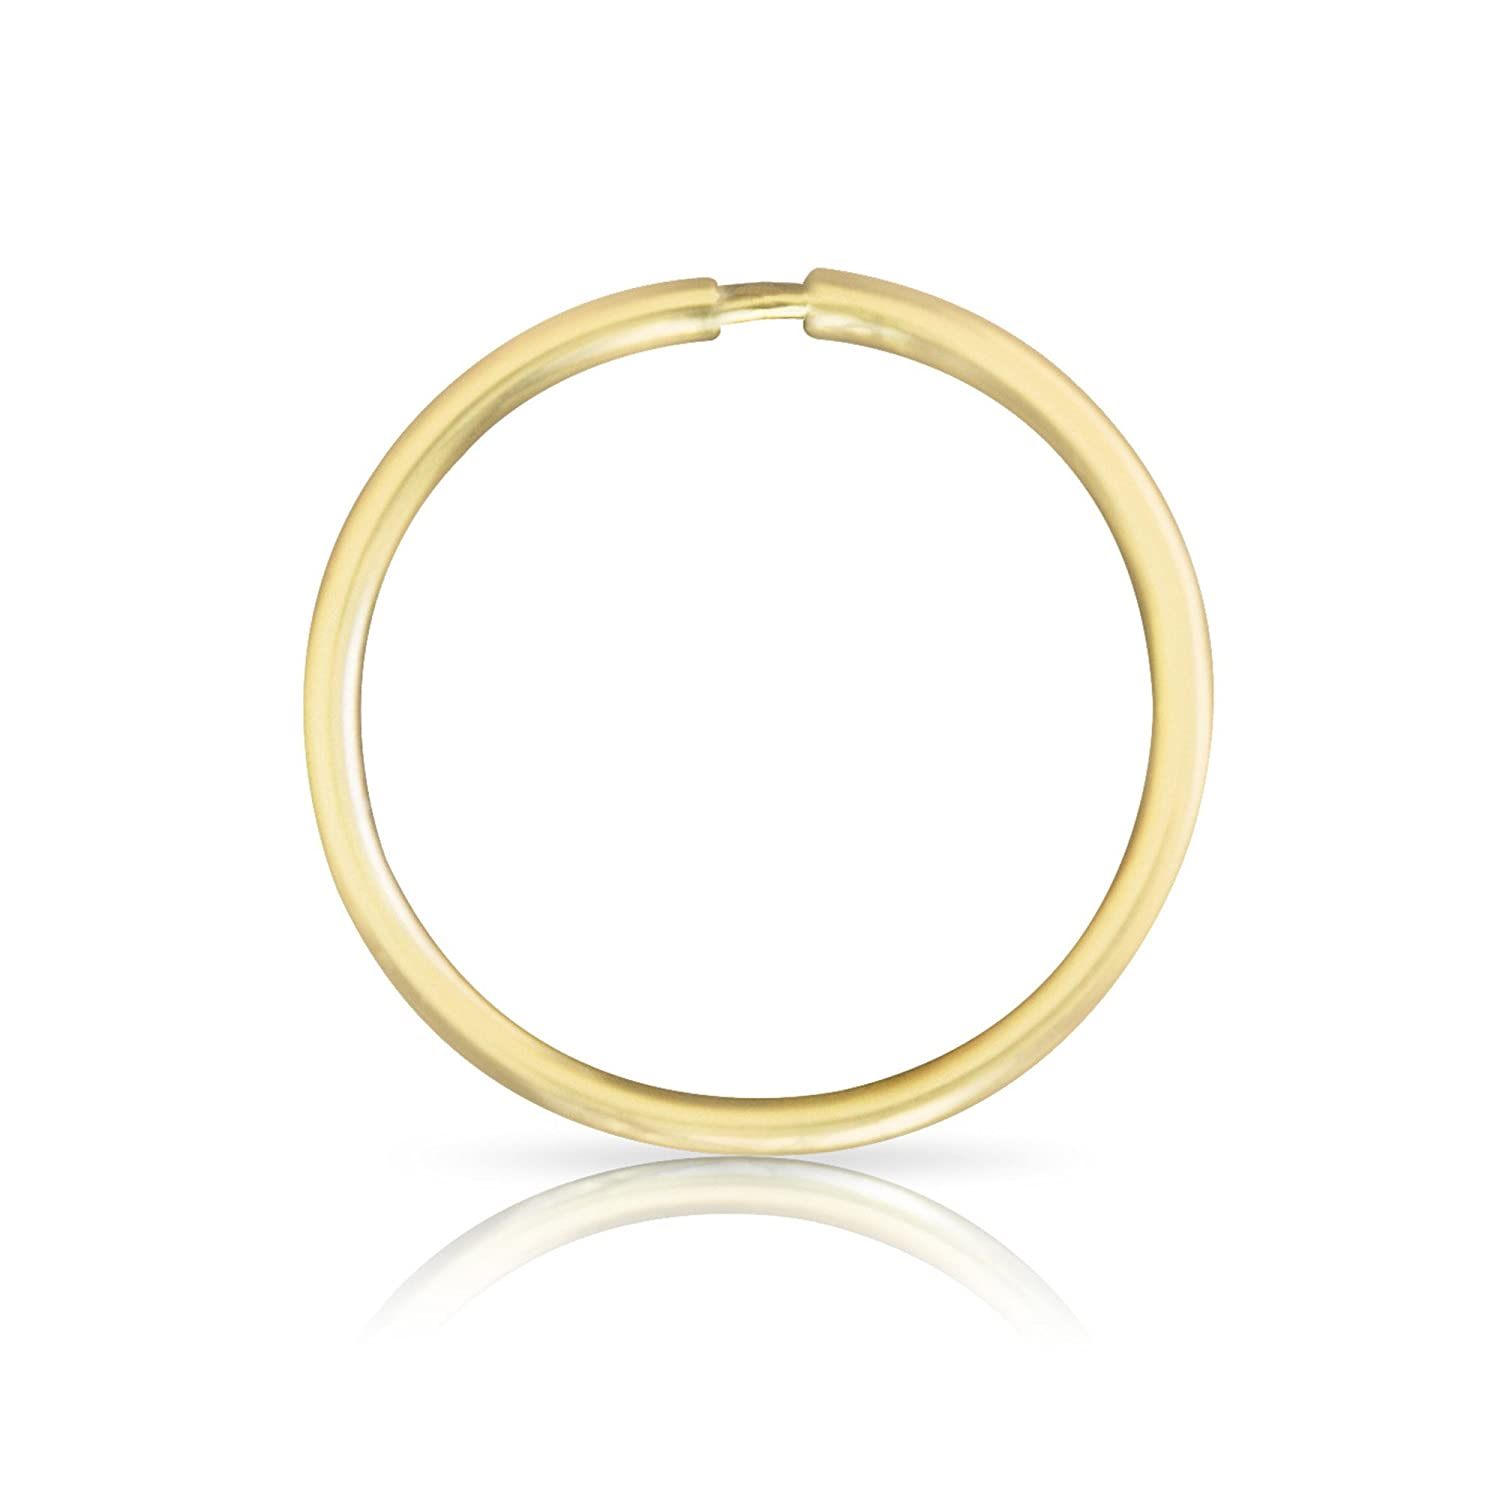 ONDAISY 1PCS 20G 14k Solid Real Gold Segment Septum Lip Nose Round Hoop Tragus Helix Cartilage Daith Inner Outer Conch Ring Ear Piercing Earring 14KE02019